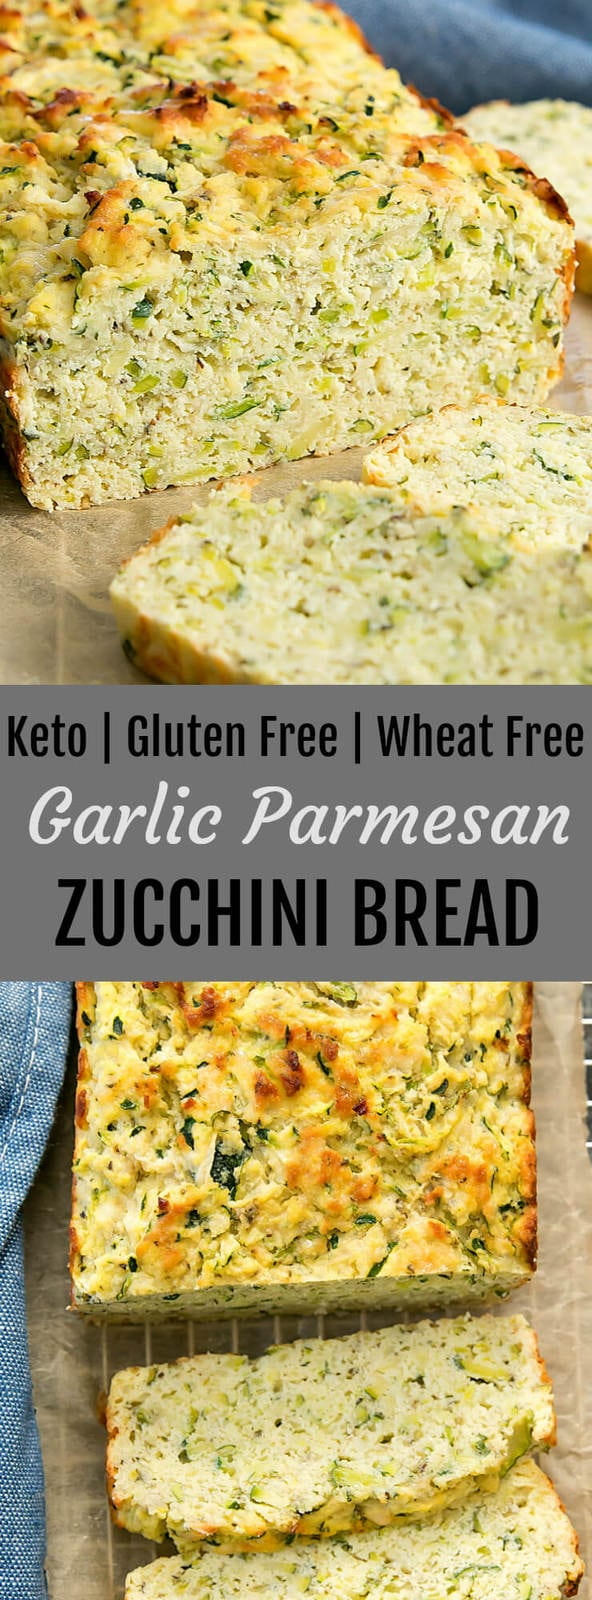 Garlic Parmesan Zucchini Bread. This savory bread is keto friendly, gluten free and wheat flour free. Works great for sandwiches, grilled cheese and more